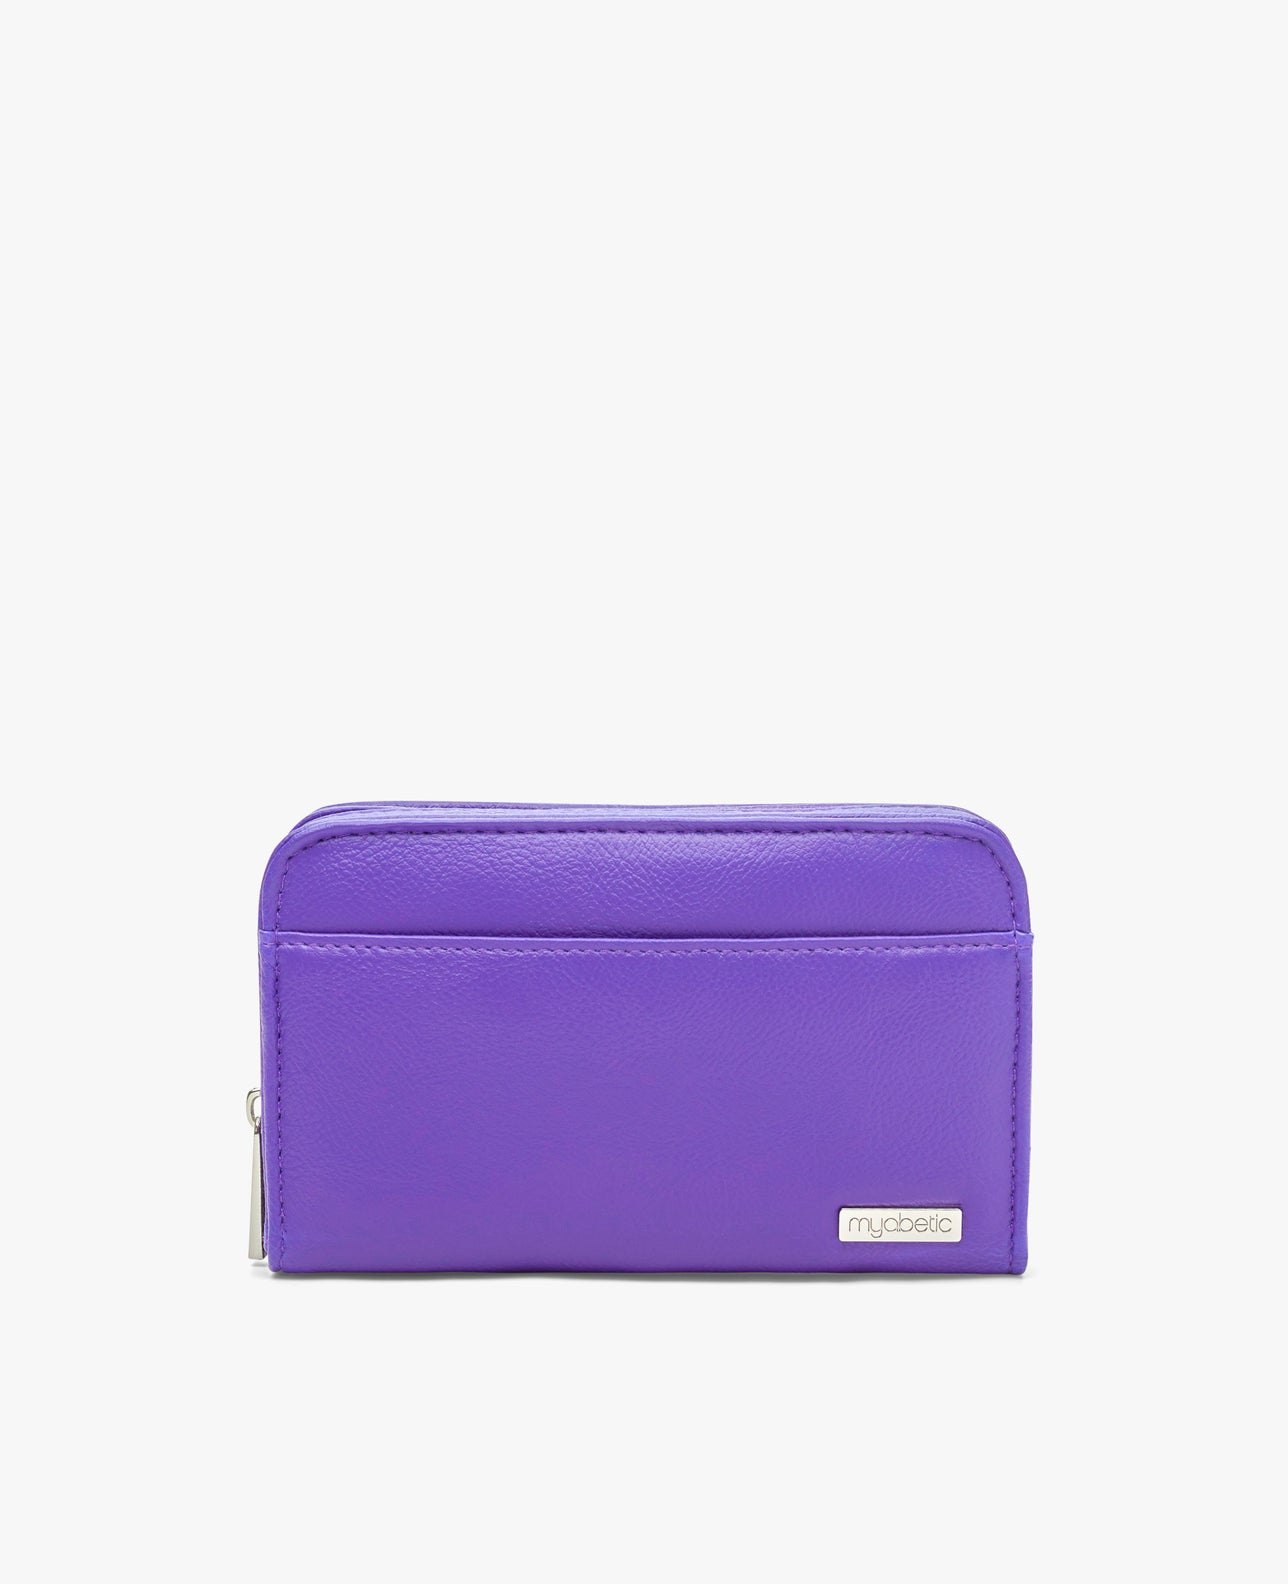 Color:Purple